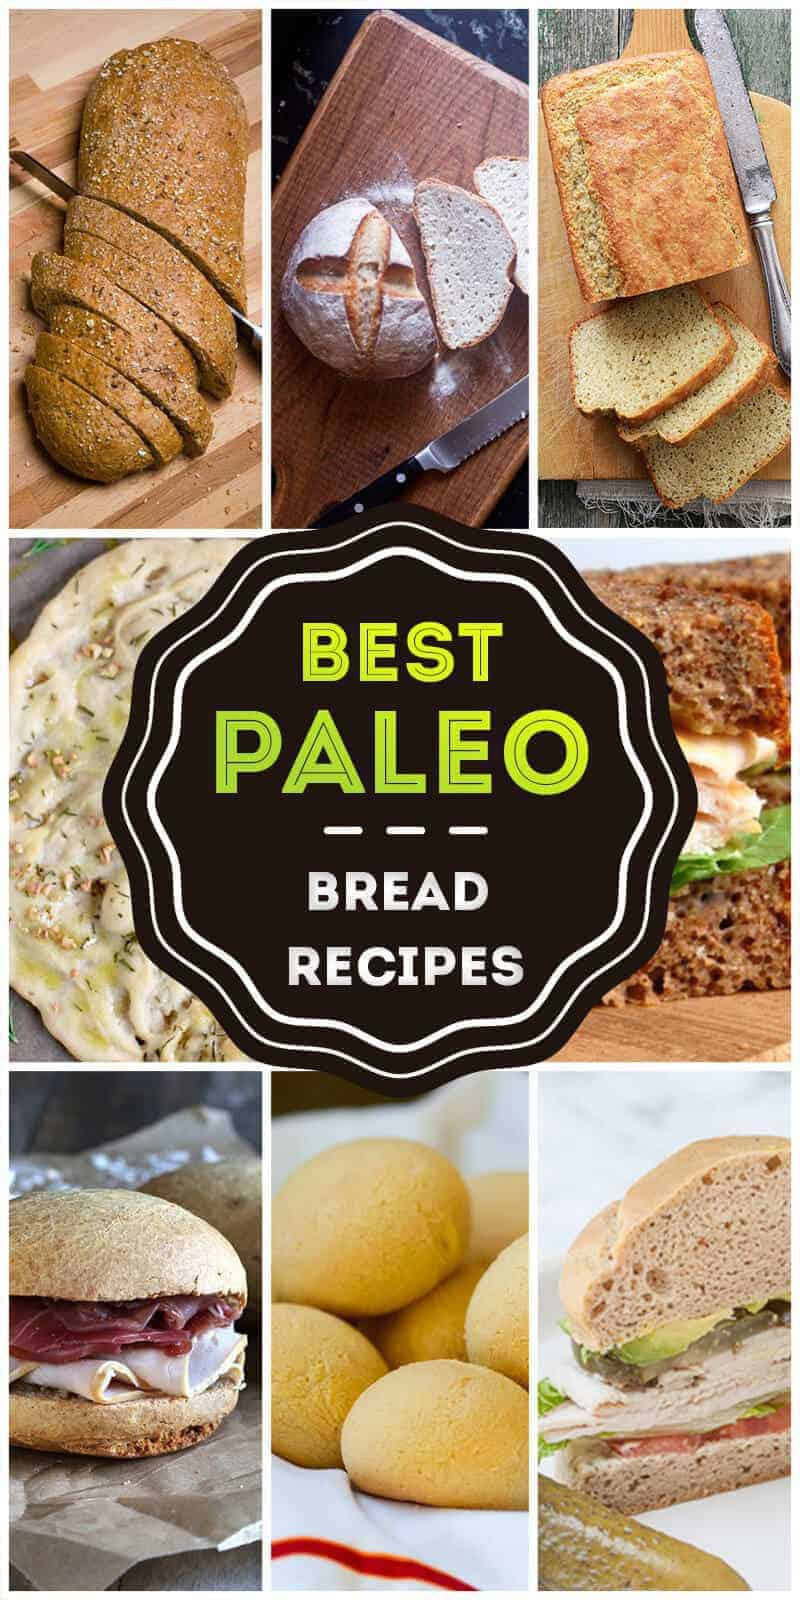 The 50 Best Paleo Bread Recipes in 2018